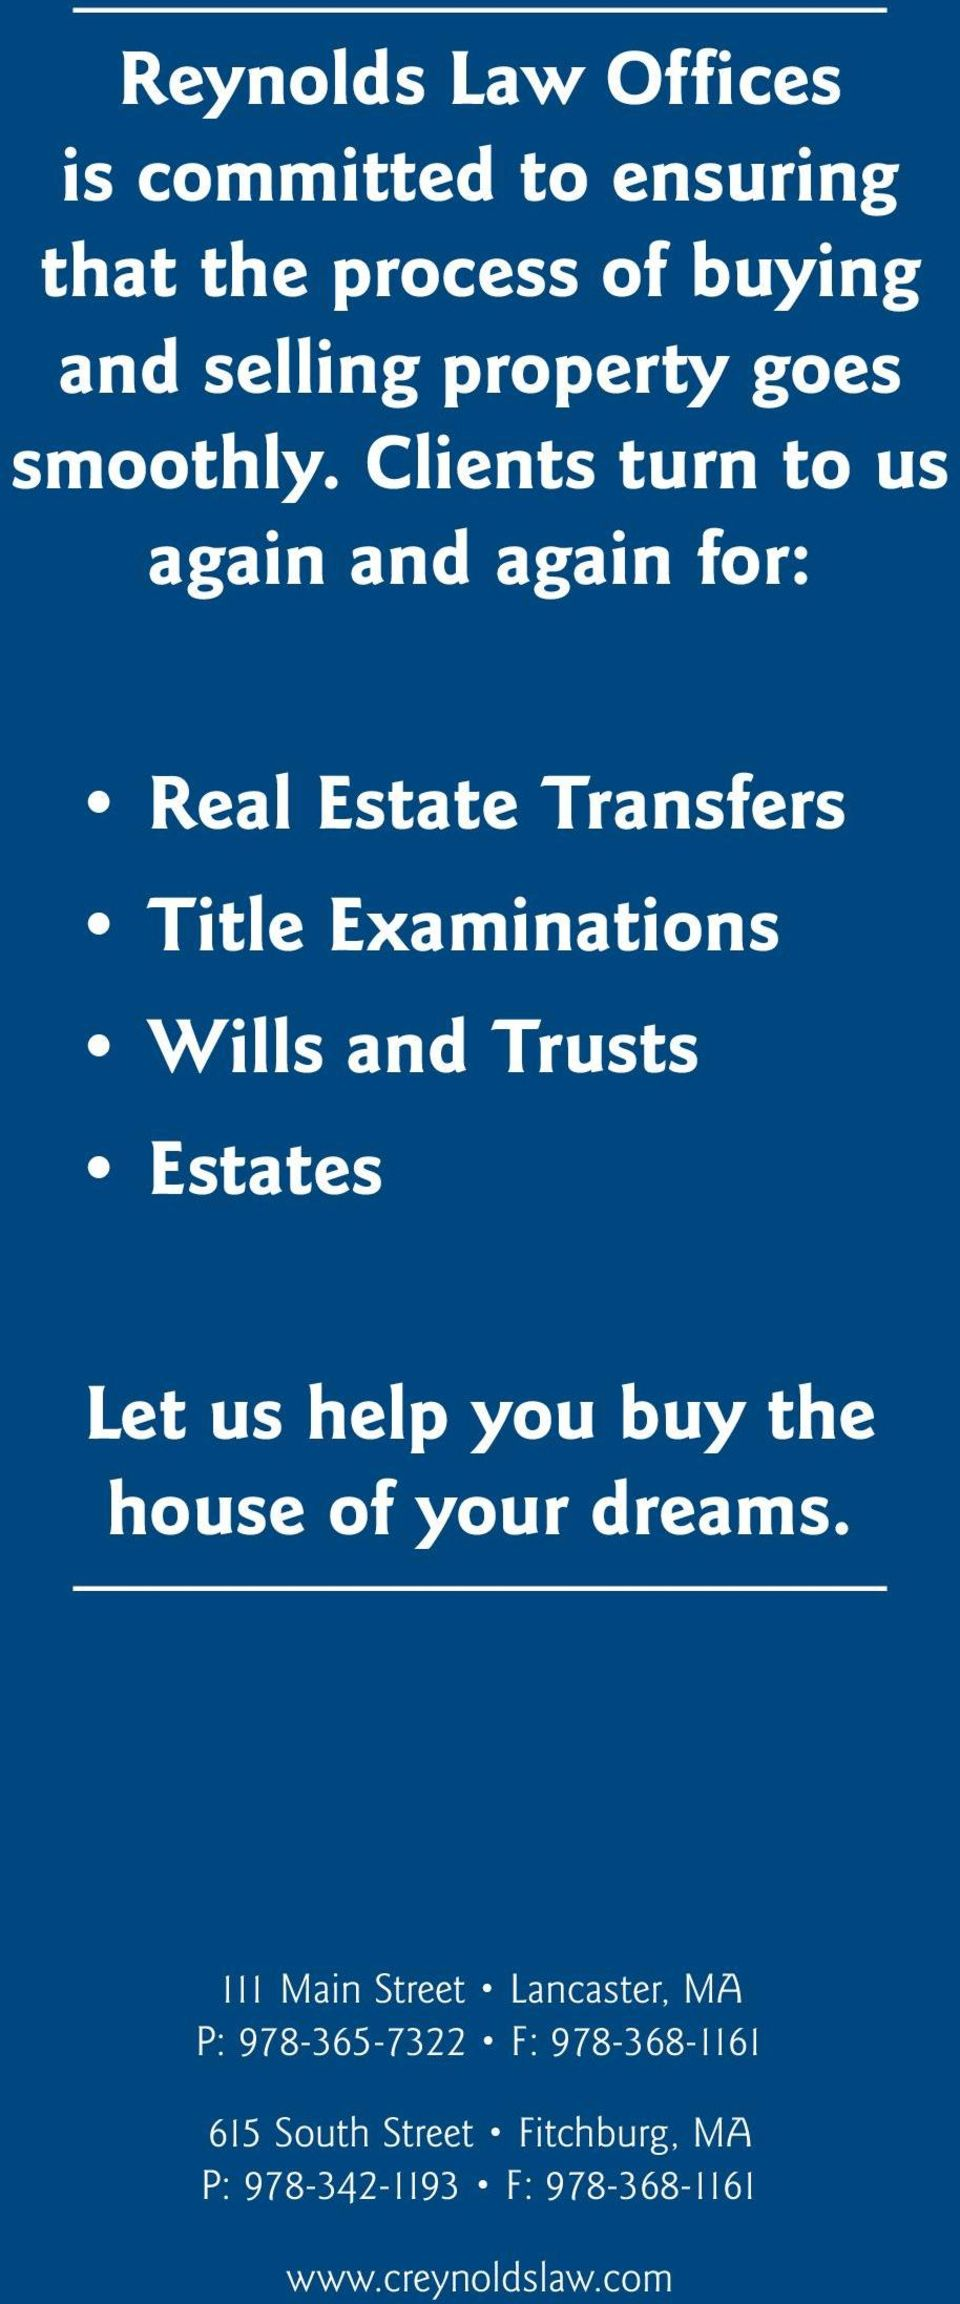 Let us help you buy the house of your dreams.